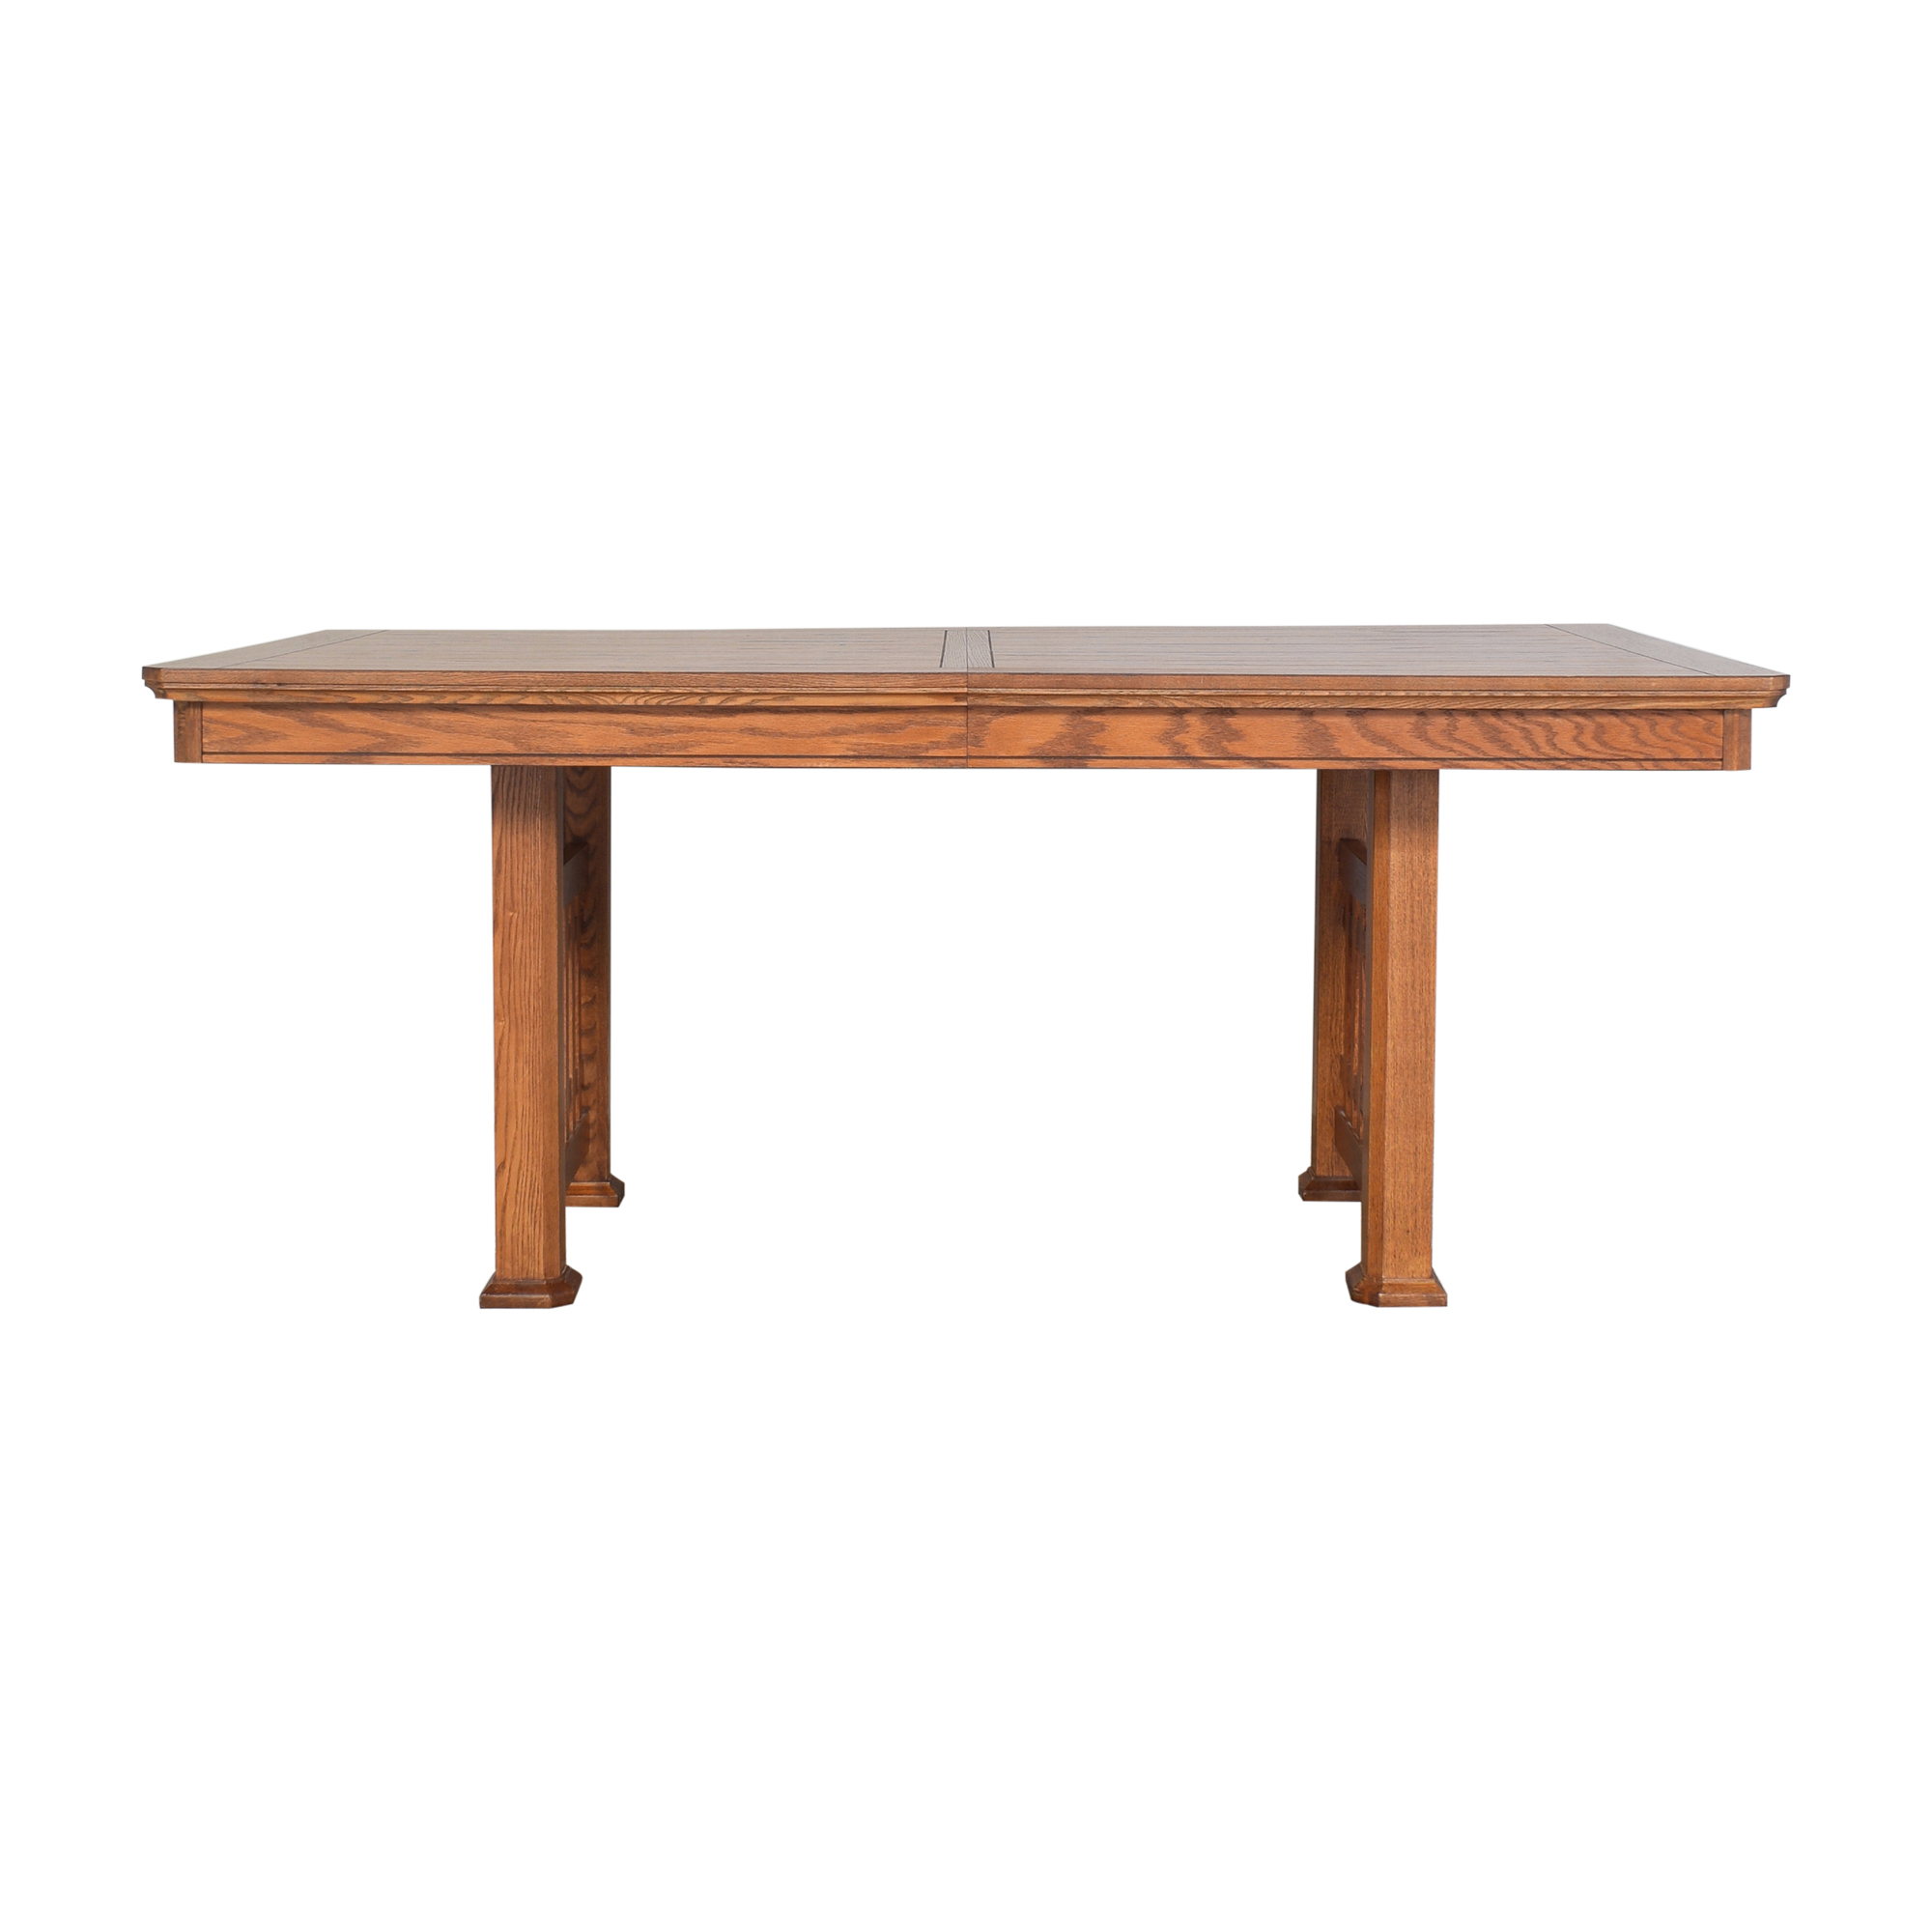 Huffman Koos Huffman Koos Mission Extendable Dining Table dimensions